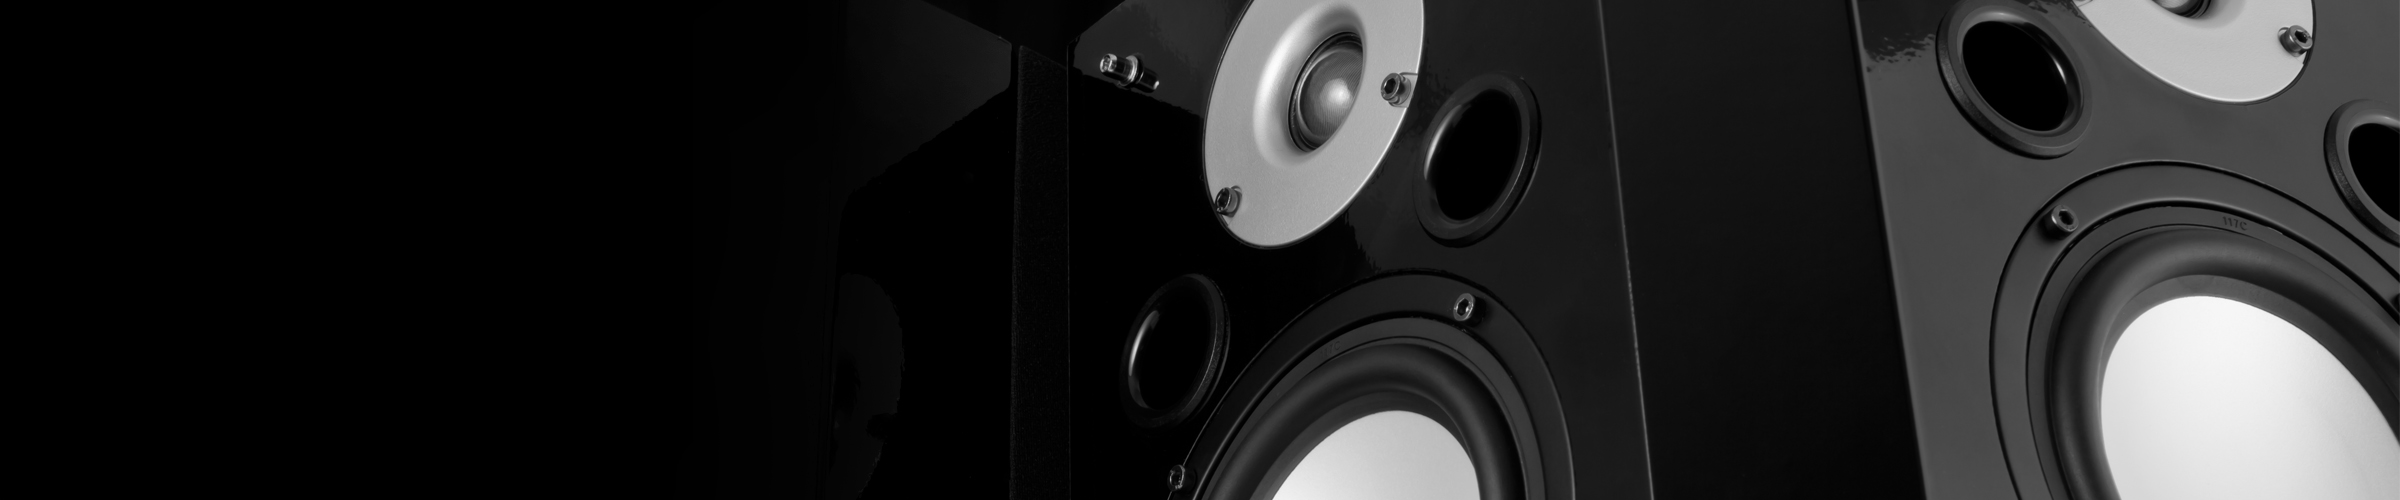 XLBP Bipolar Surround Sound Speakers Intro